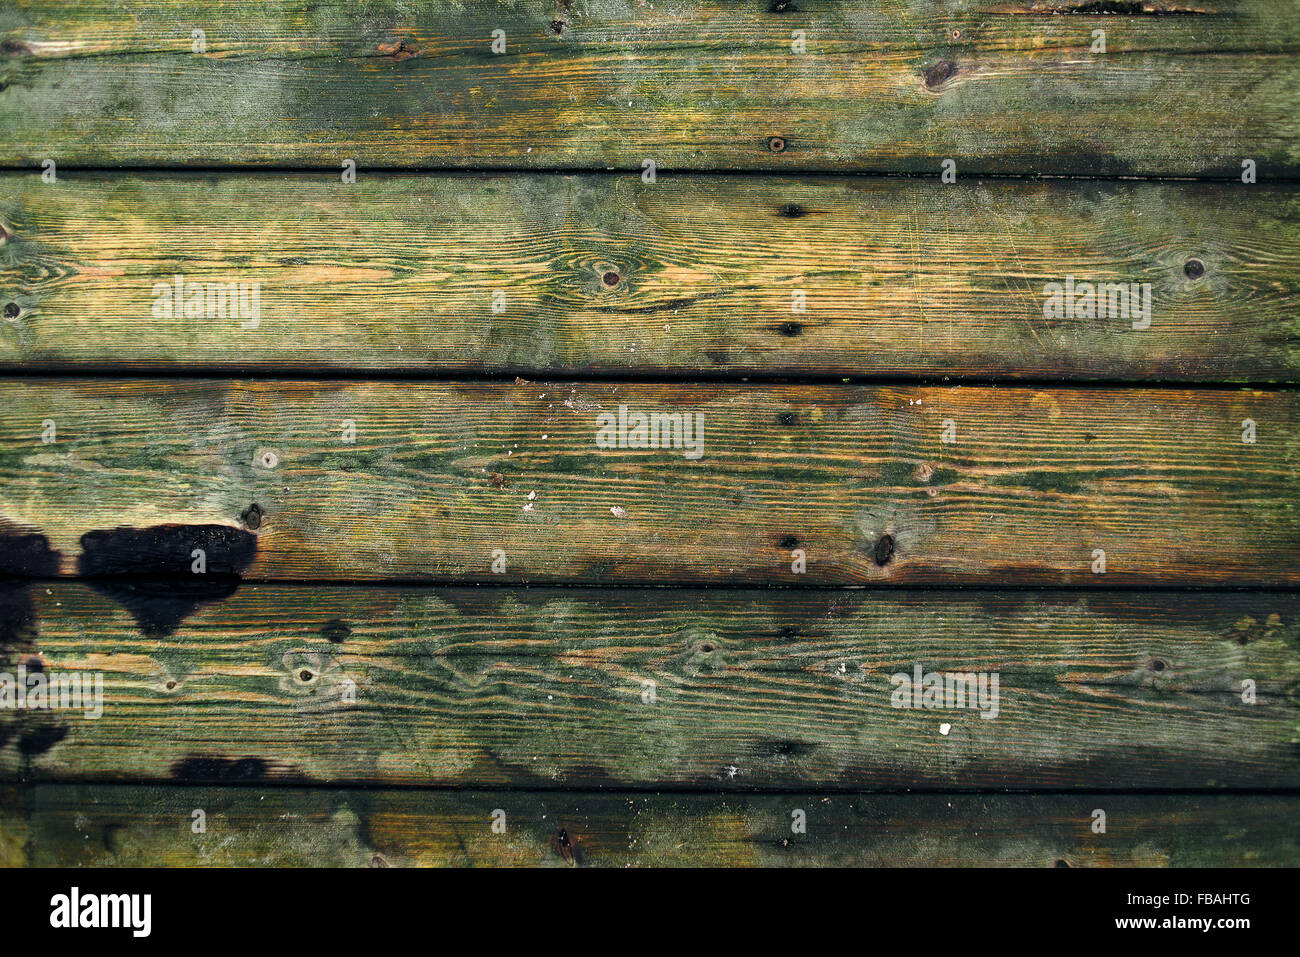 Old wood board Background Top View Of Old Wood Planks Surface As Rustic Wooden Board Texture 123rfcom Top View Of Old Wood Planks Surface As Rustic Wooden Board Texture